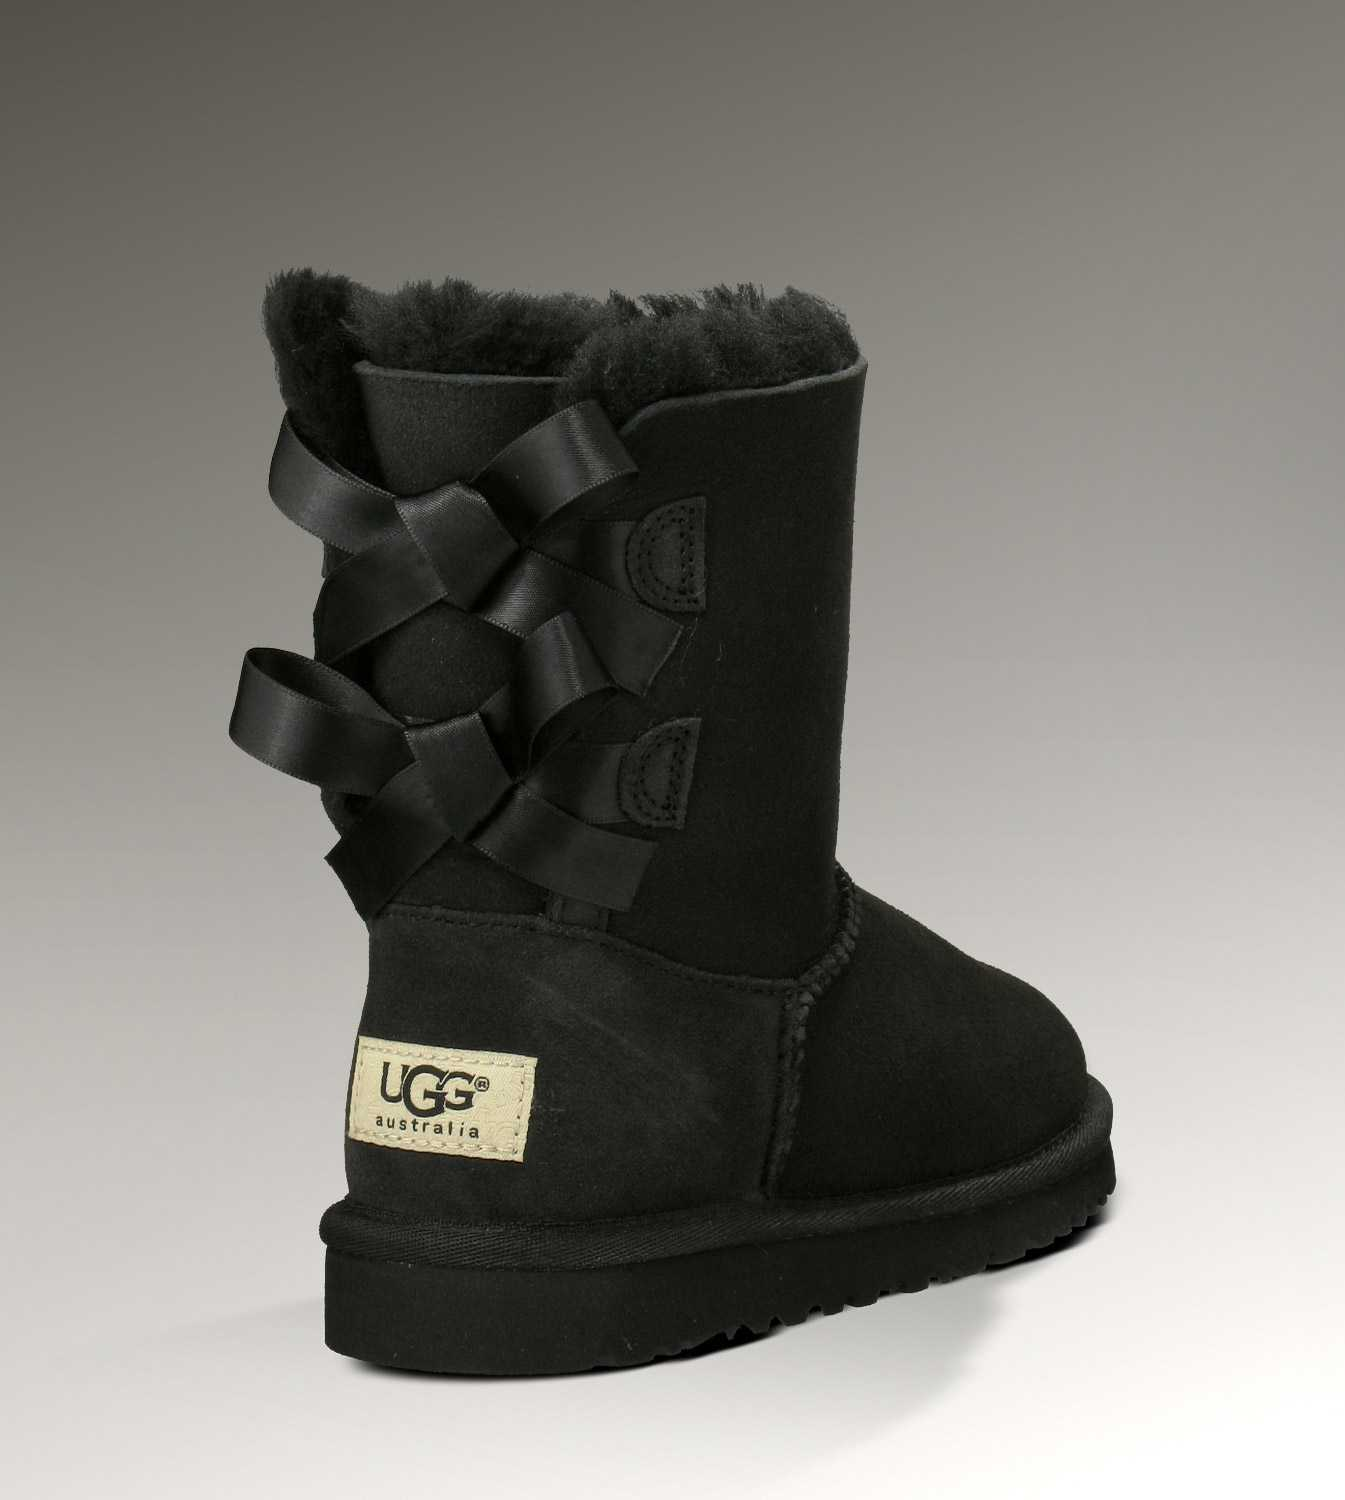 ugg chaussure pas cher